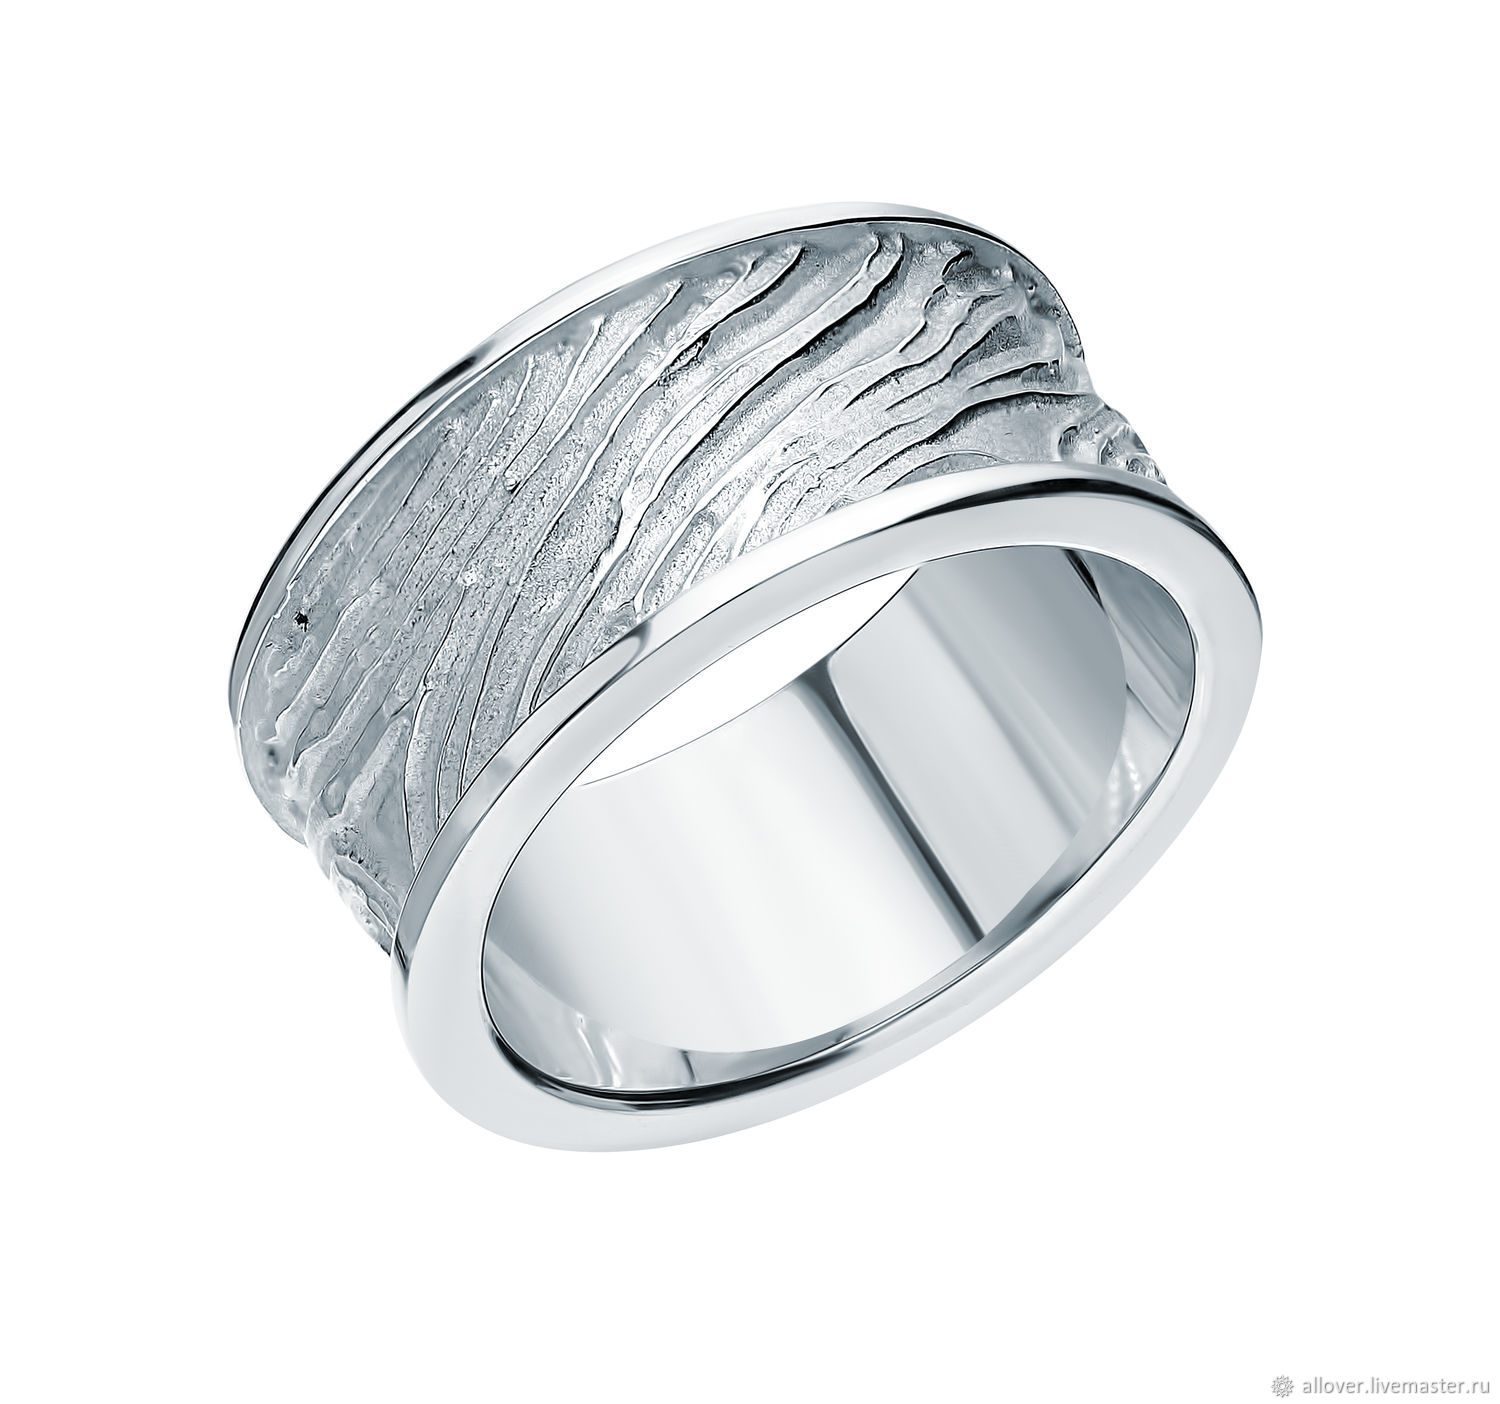 Silver textured ring 'Storm' 925 silver, Rings, Moscow,  Фото №1